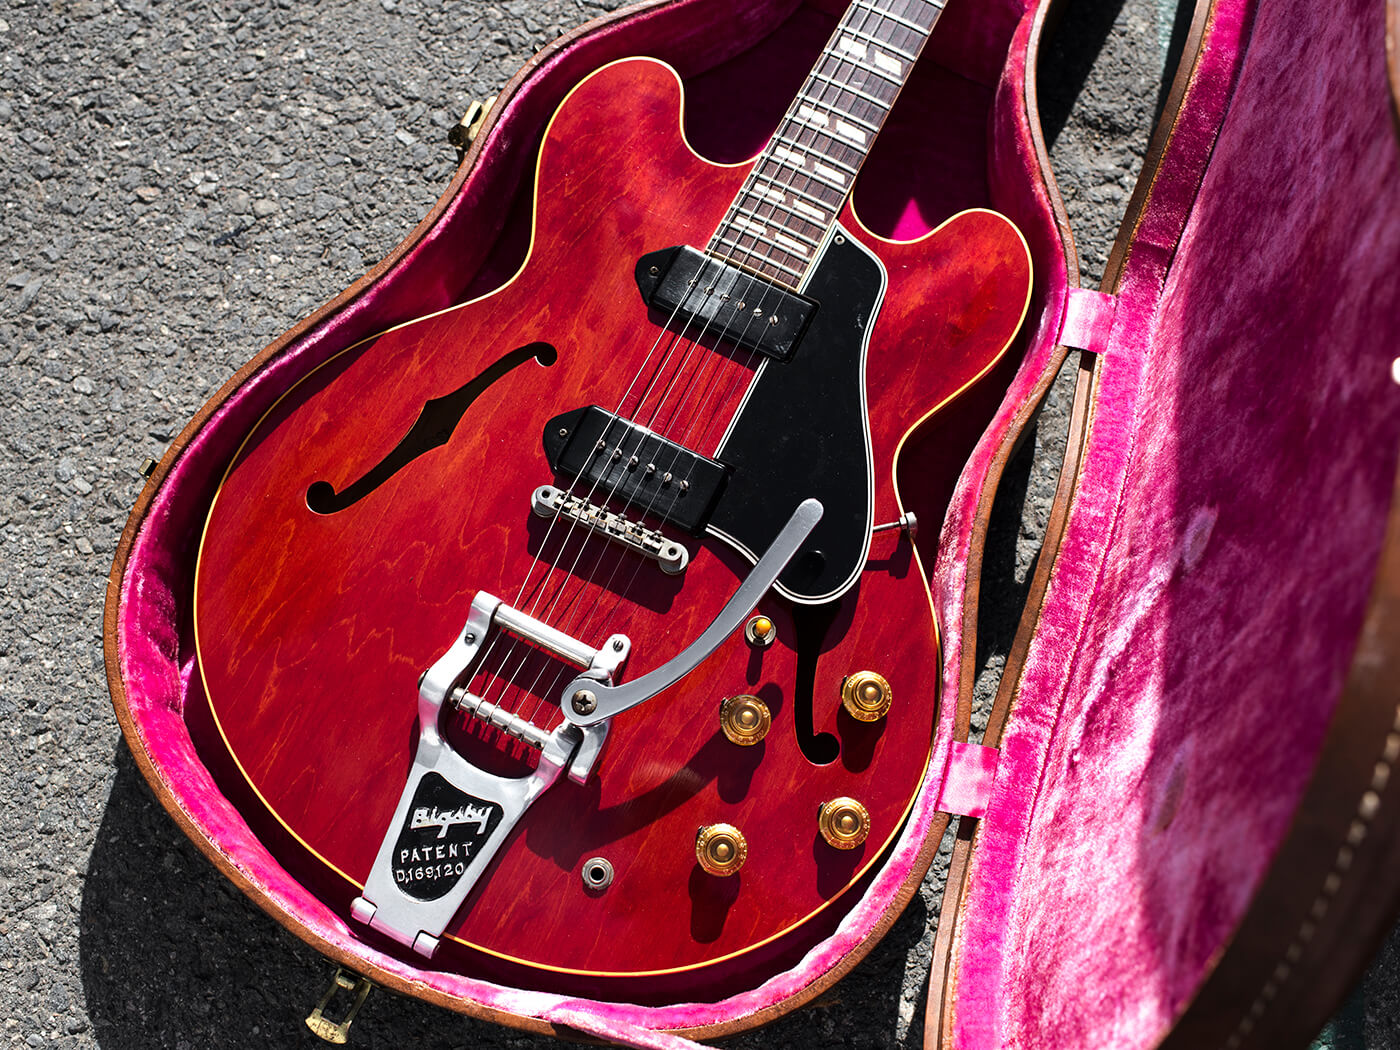 1959 Gibson ES-330TDC in Cherry finish